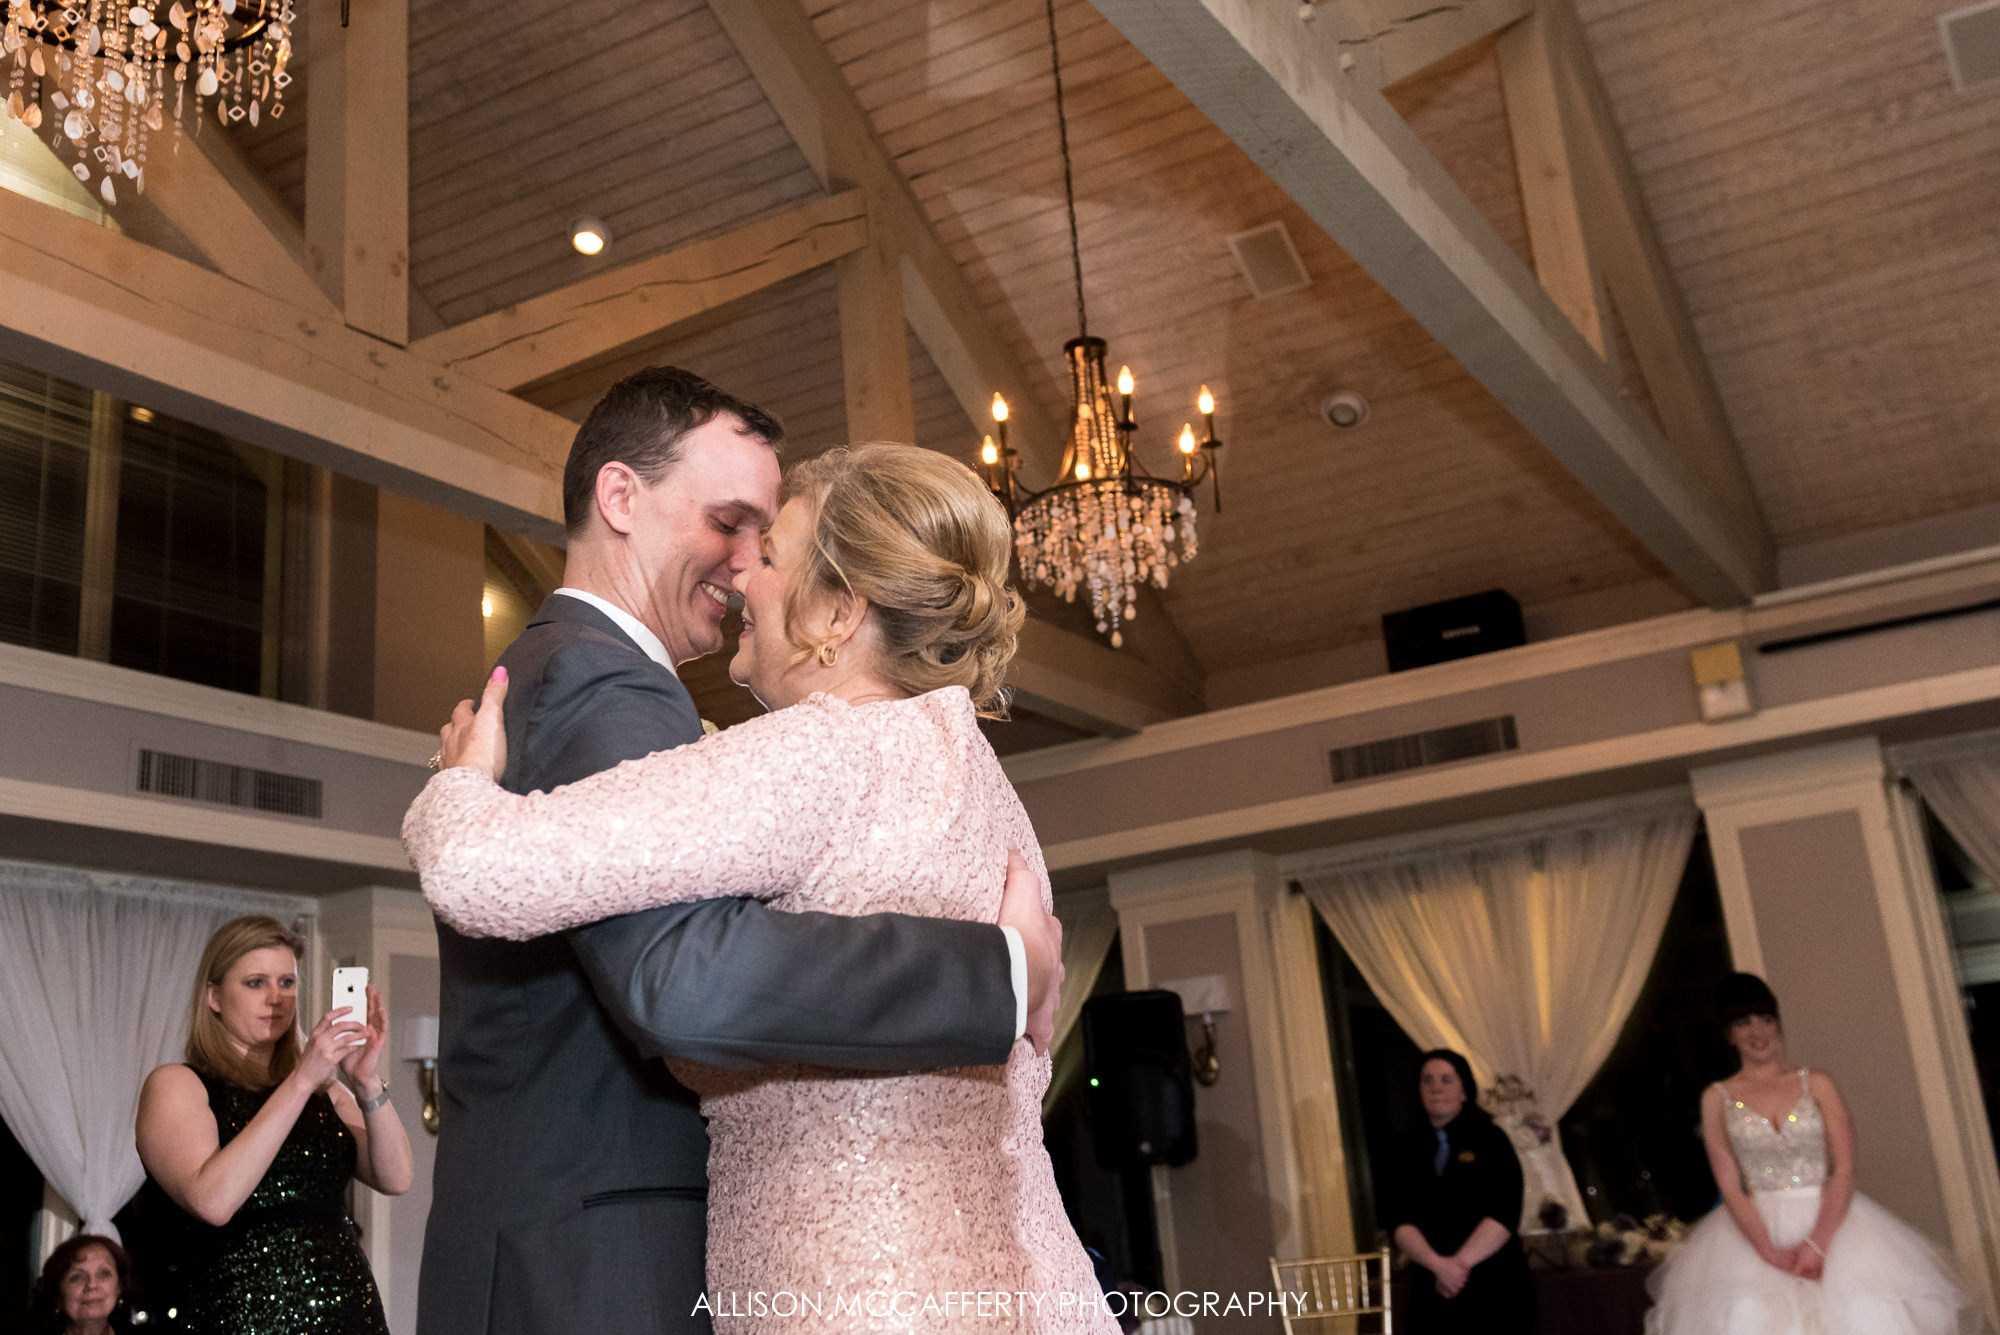 Groom dancing with his Mom at his wedding